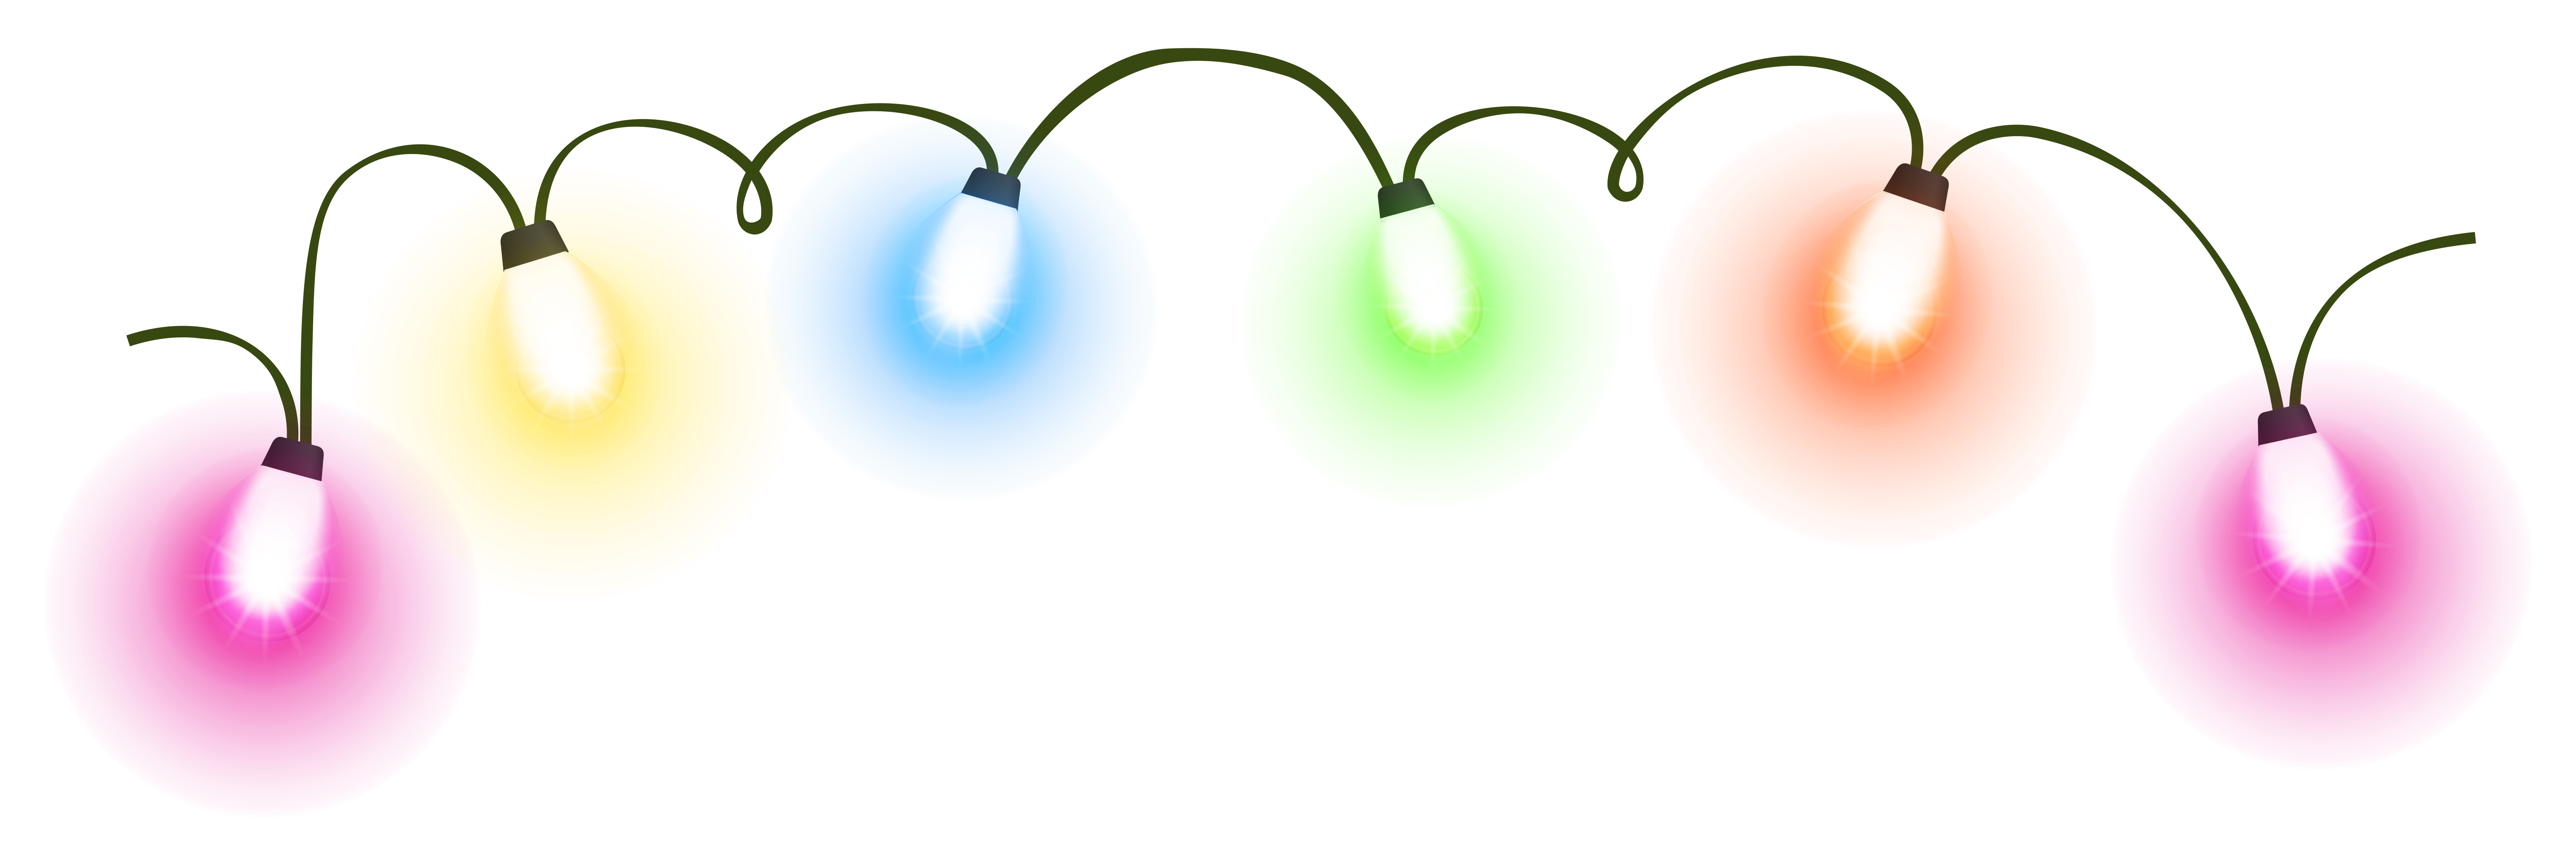 Transparent christmas png gallery. Lights clipart